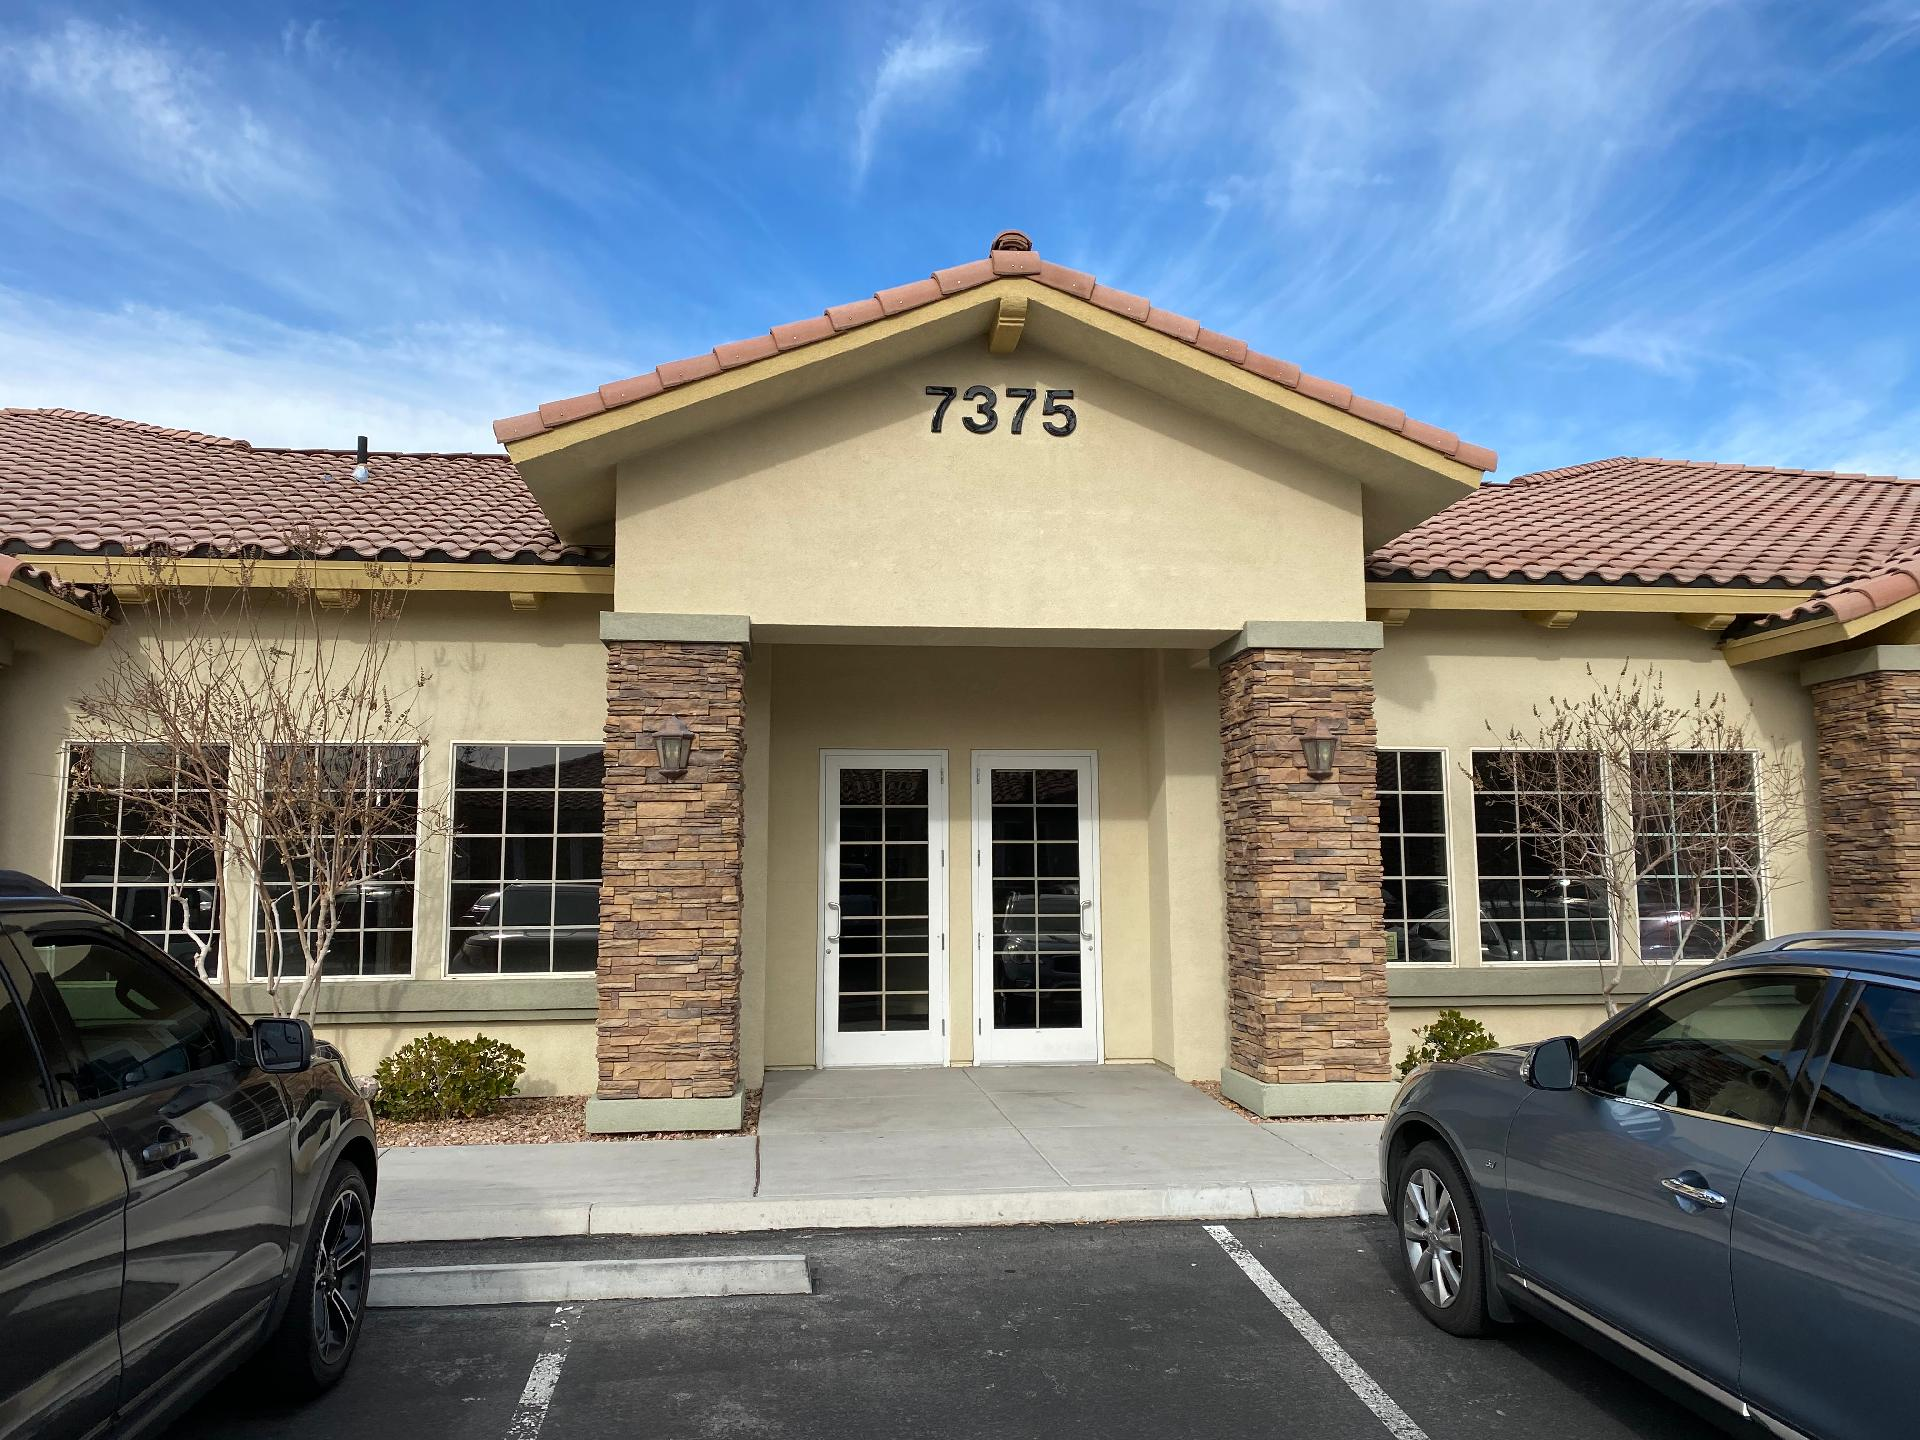 7375 S Pecos Rd, Suite 102 Property Photo - Las Vegas, NV real estate listing